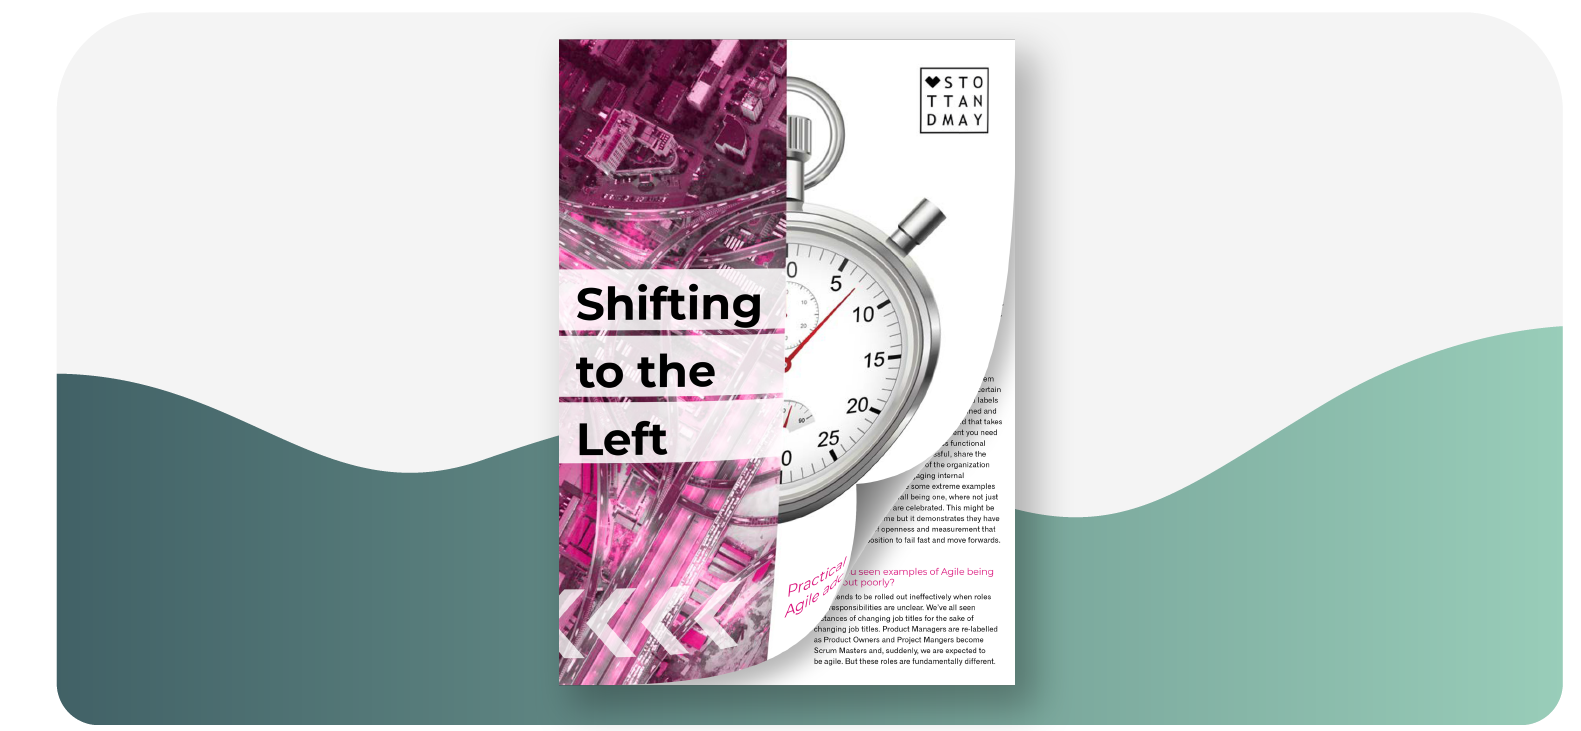 Stott and May Shifting to the left: Advice for Agile Adoption report